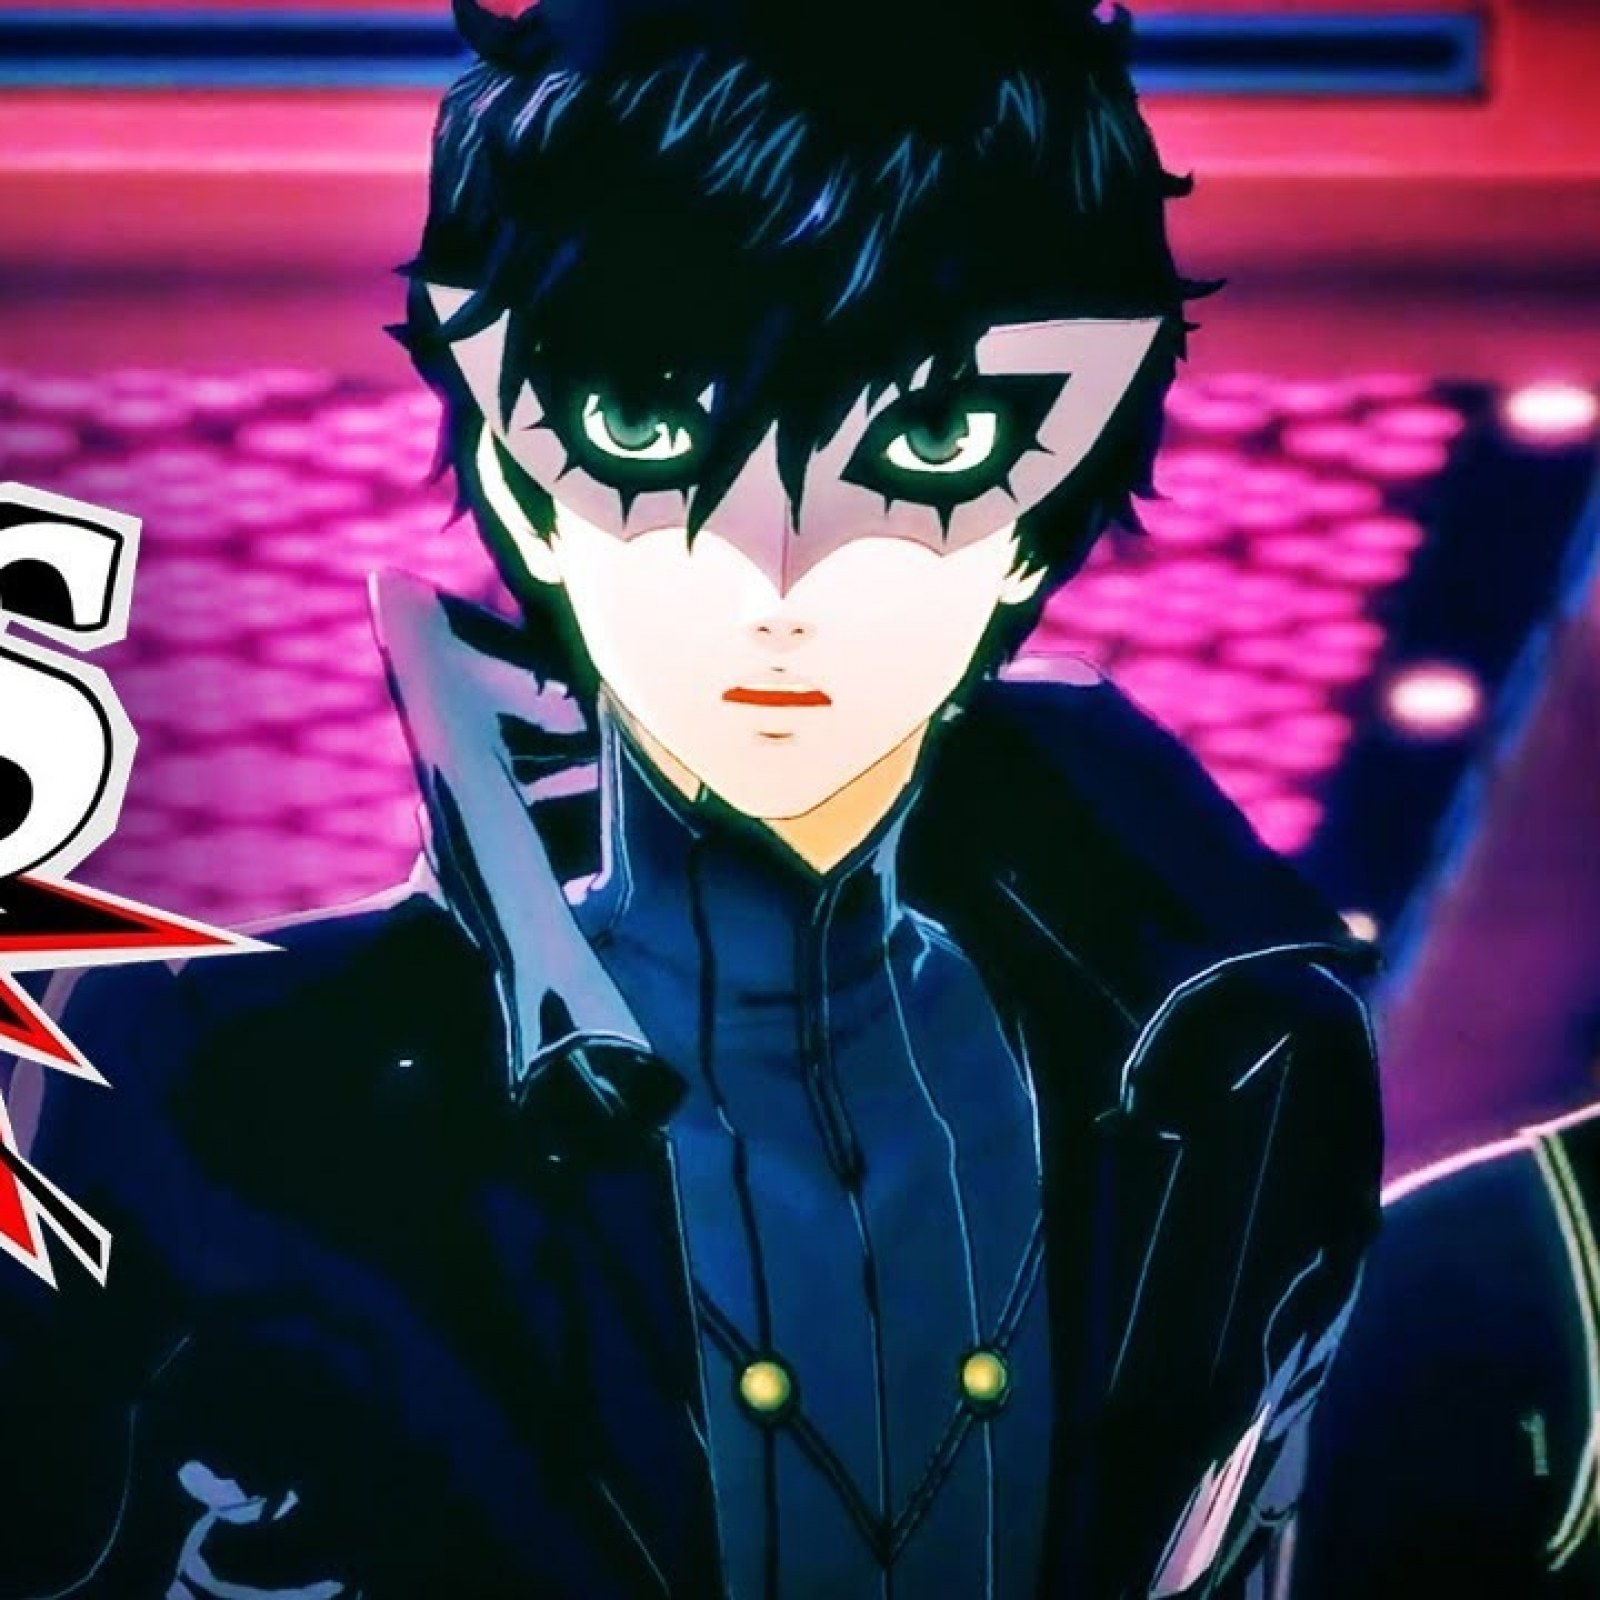 Persona 5 Scramble 2 Hour Gameplay Offers Huge Update On Atlus Musou